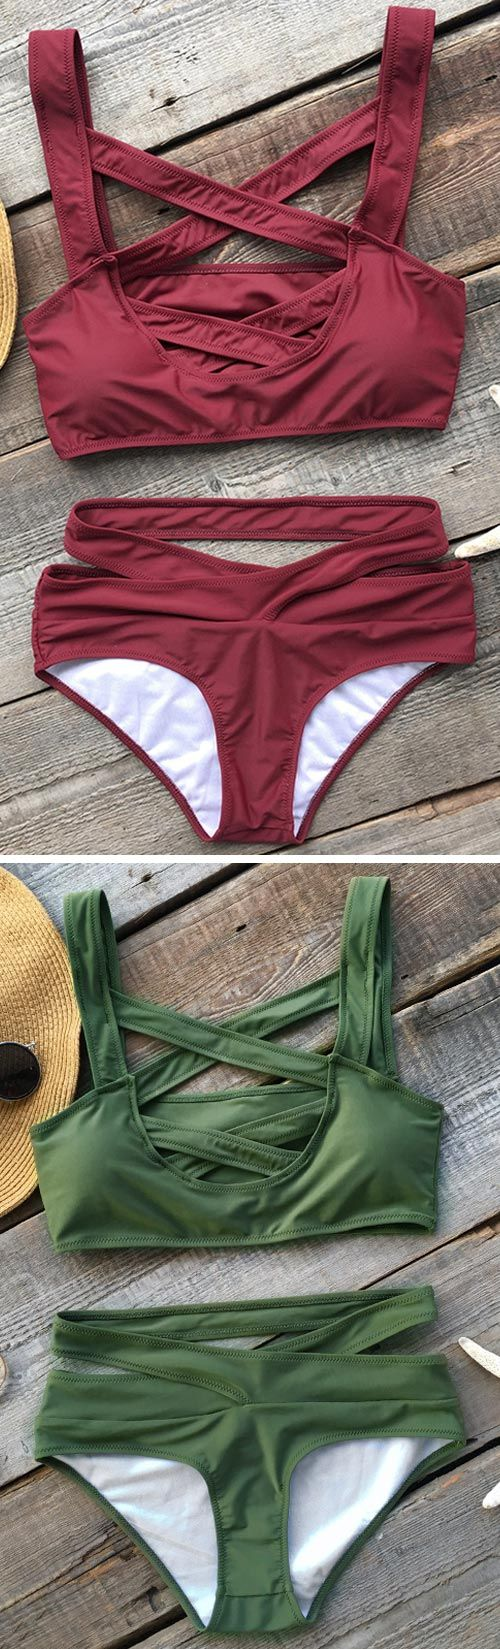 Dare to try something nontraditional? You better not miss this bikini. Solid color with front cross design make it special. Check this bikini at cupshe.com